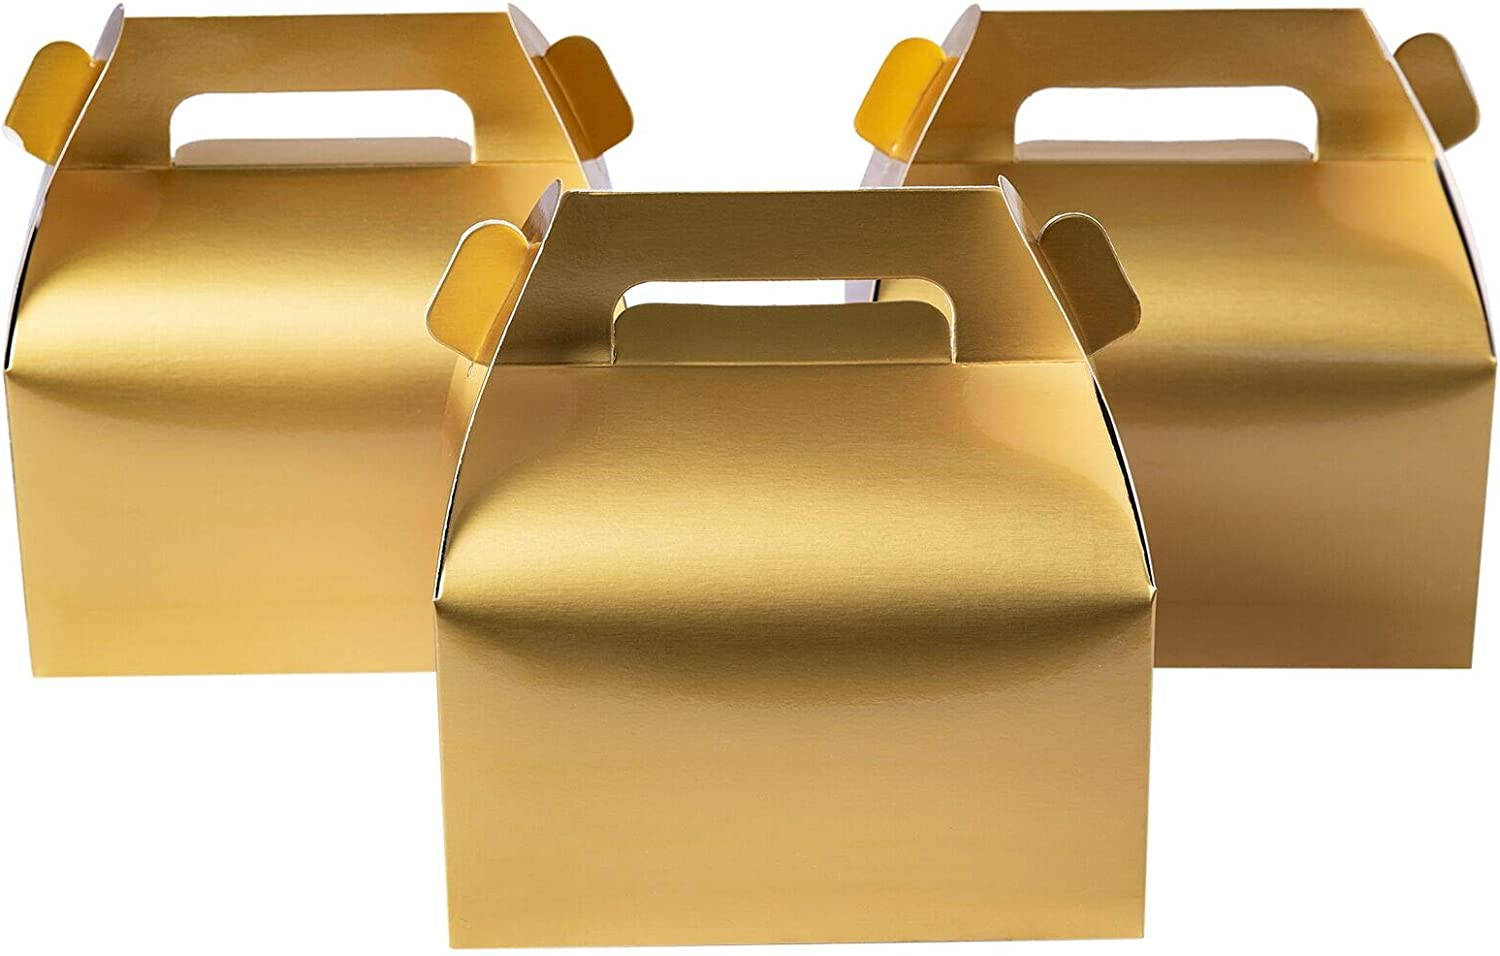 50-Pack Gable Metallic Gold Candy Treat Boxes,Small Goodie Gift Boxes for Wedding and Birthday Party Favors Box 6.2 x 3.5 x 3.5 inch